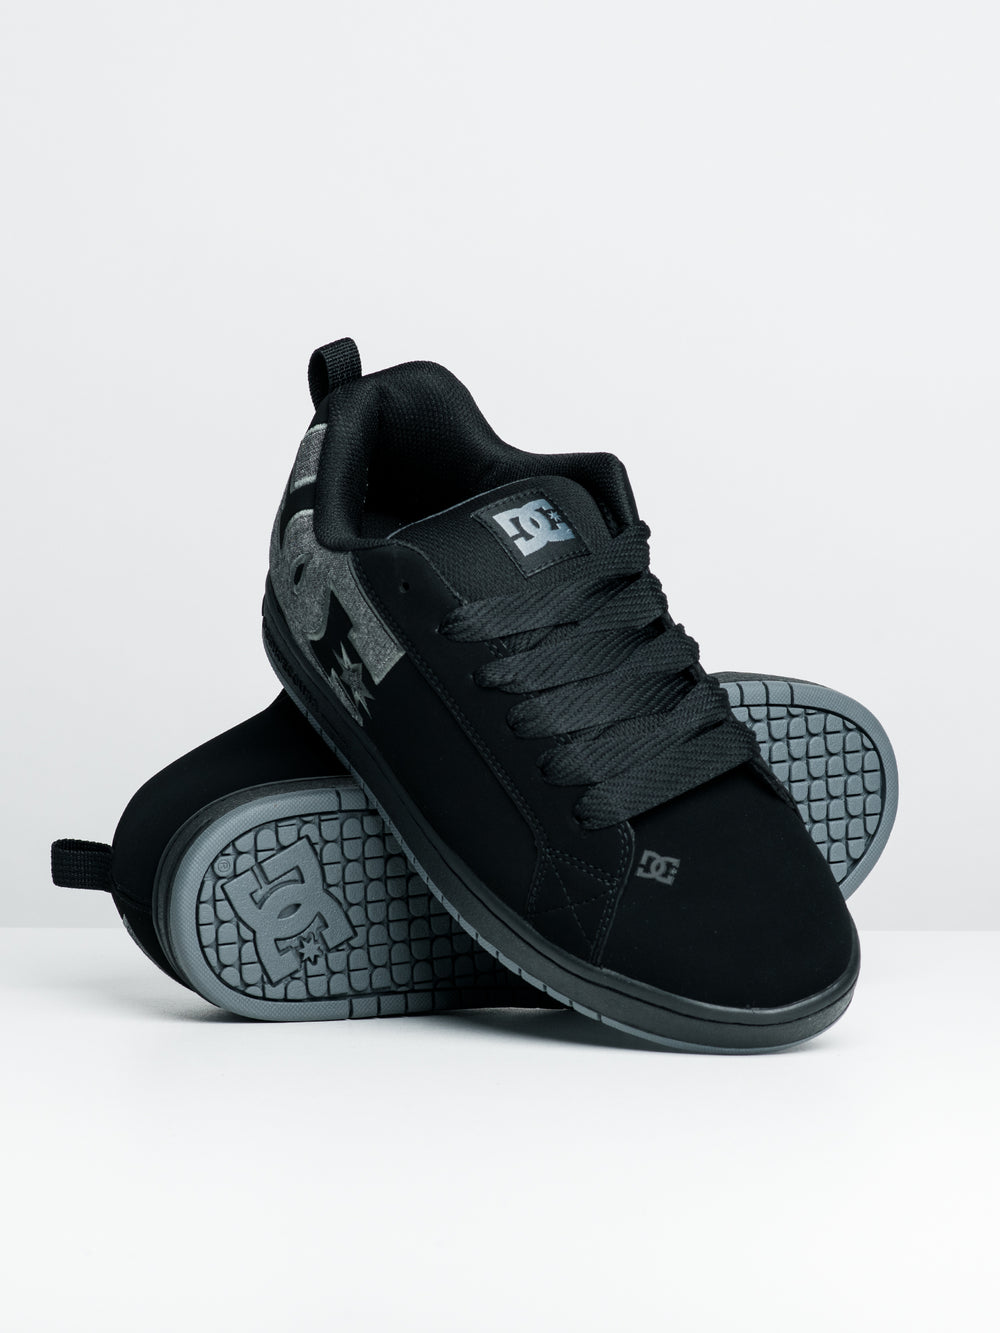 MENS COURT GRAFFIK - BLACK/GREY